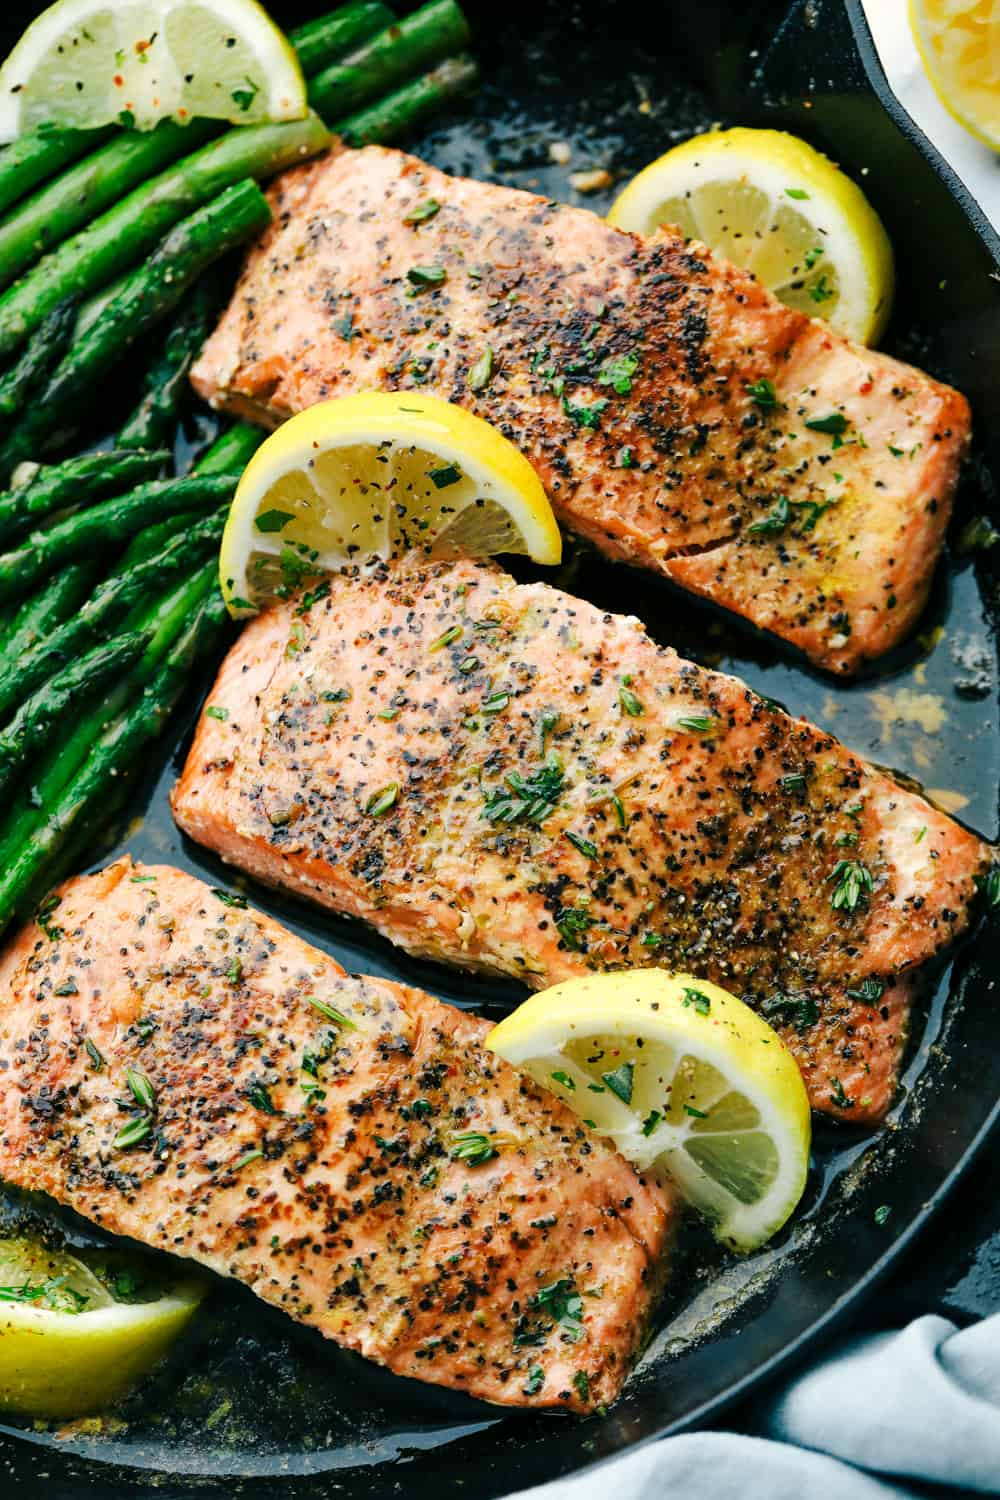 Brown butter lemon salmon being sautéed by lemons and asparagus on the side.